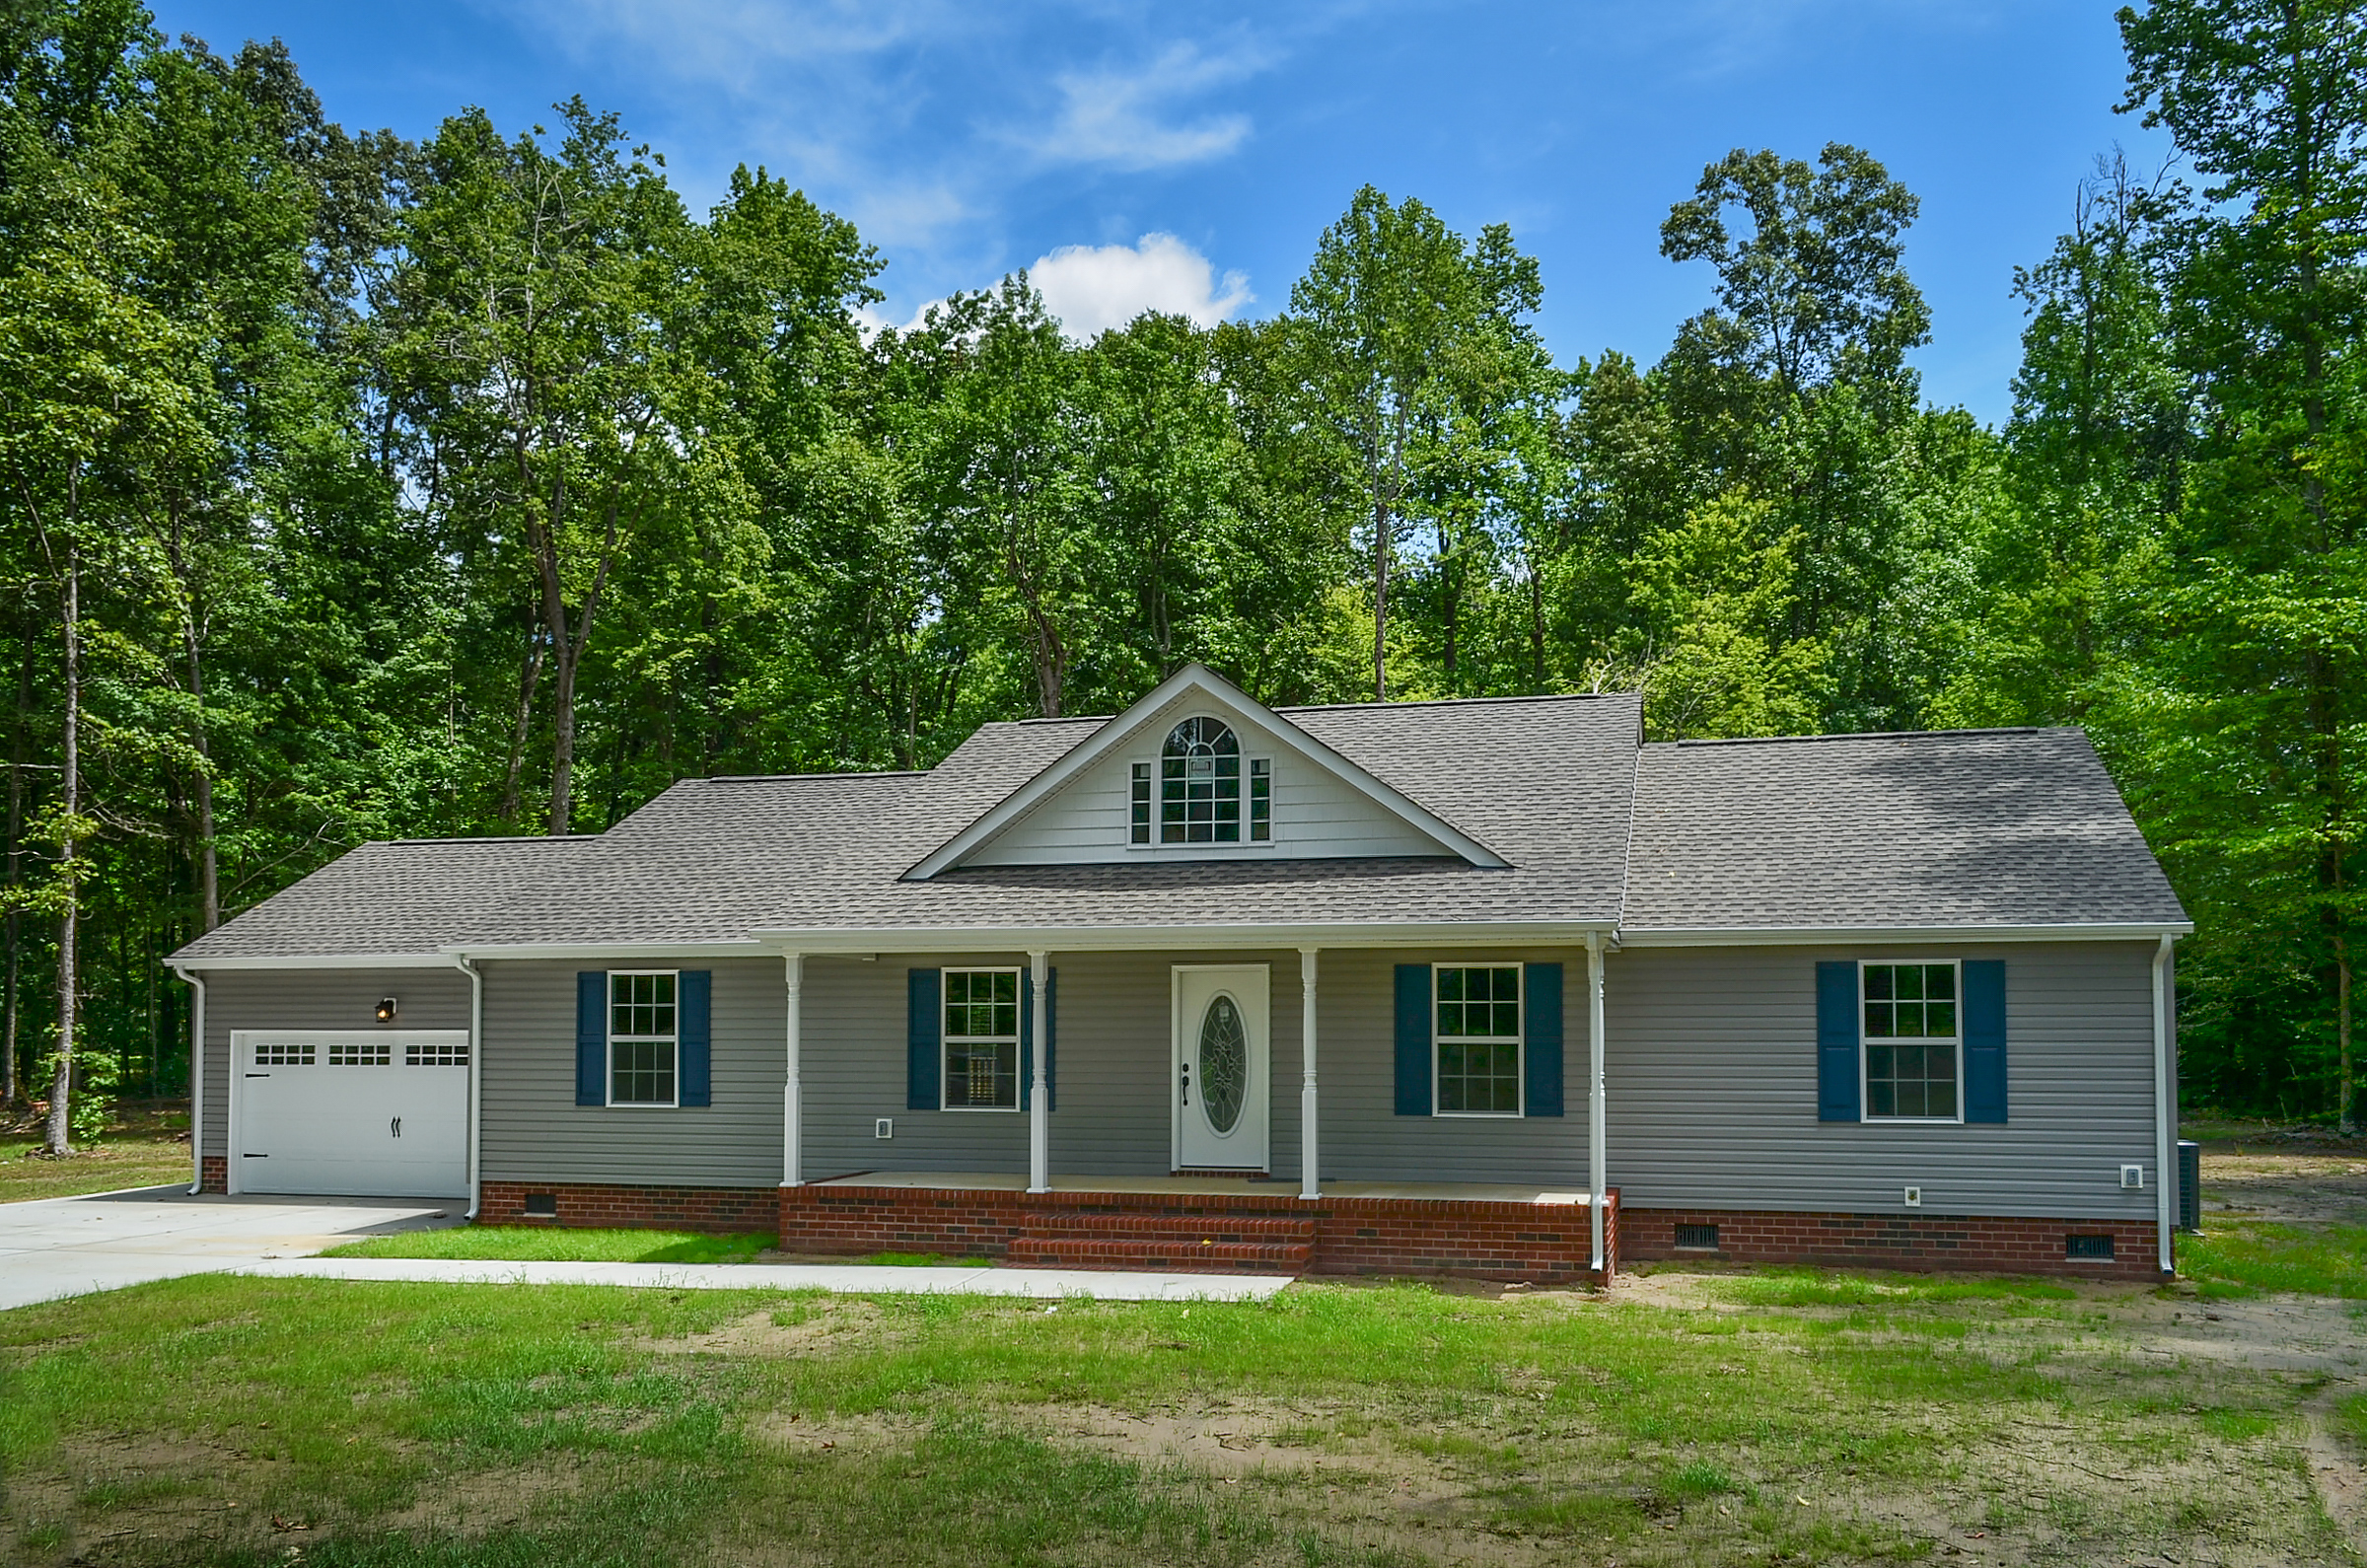 2273 AIRPORT RD - NEW CONSTRUCTION ON OVER AN ACRE